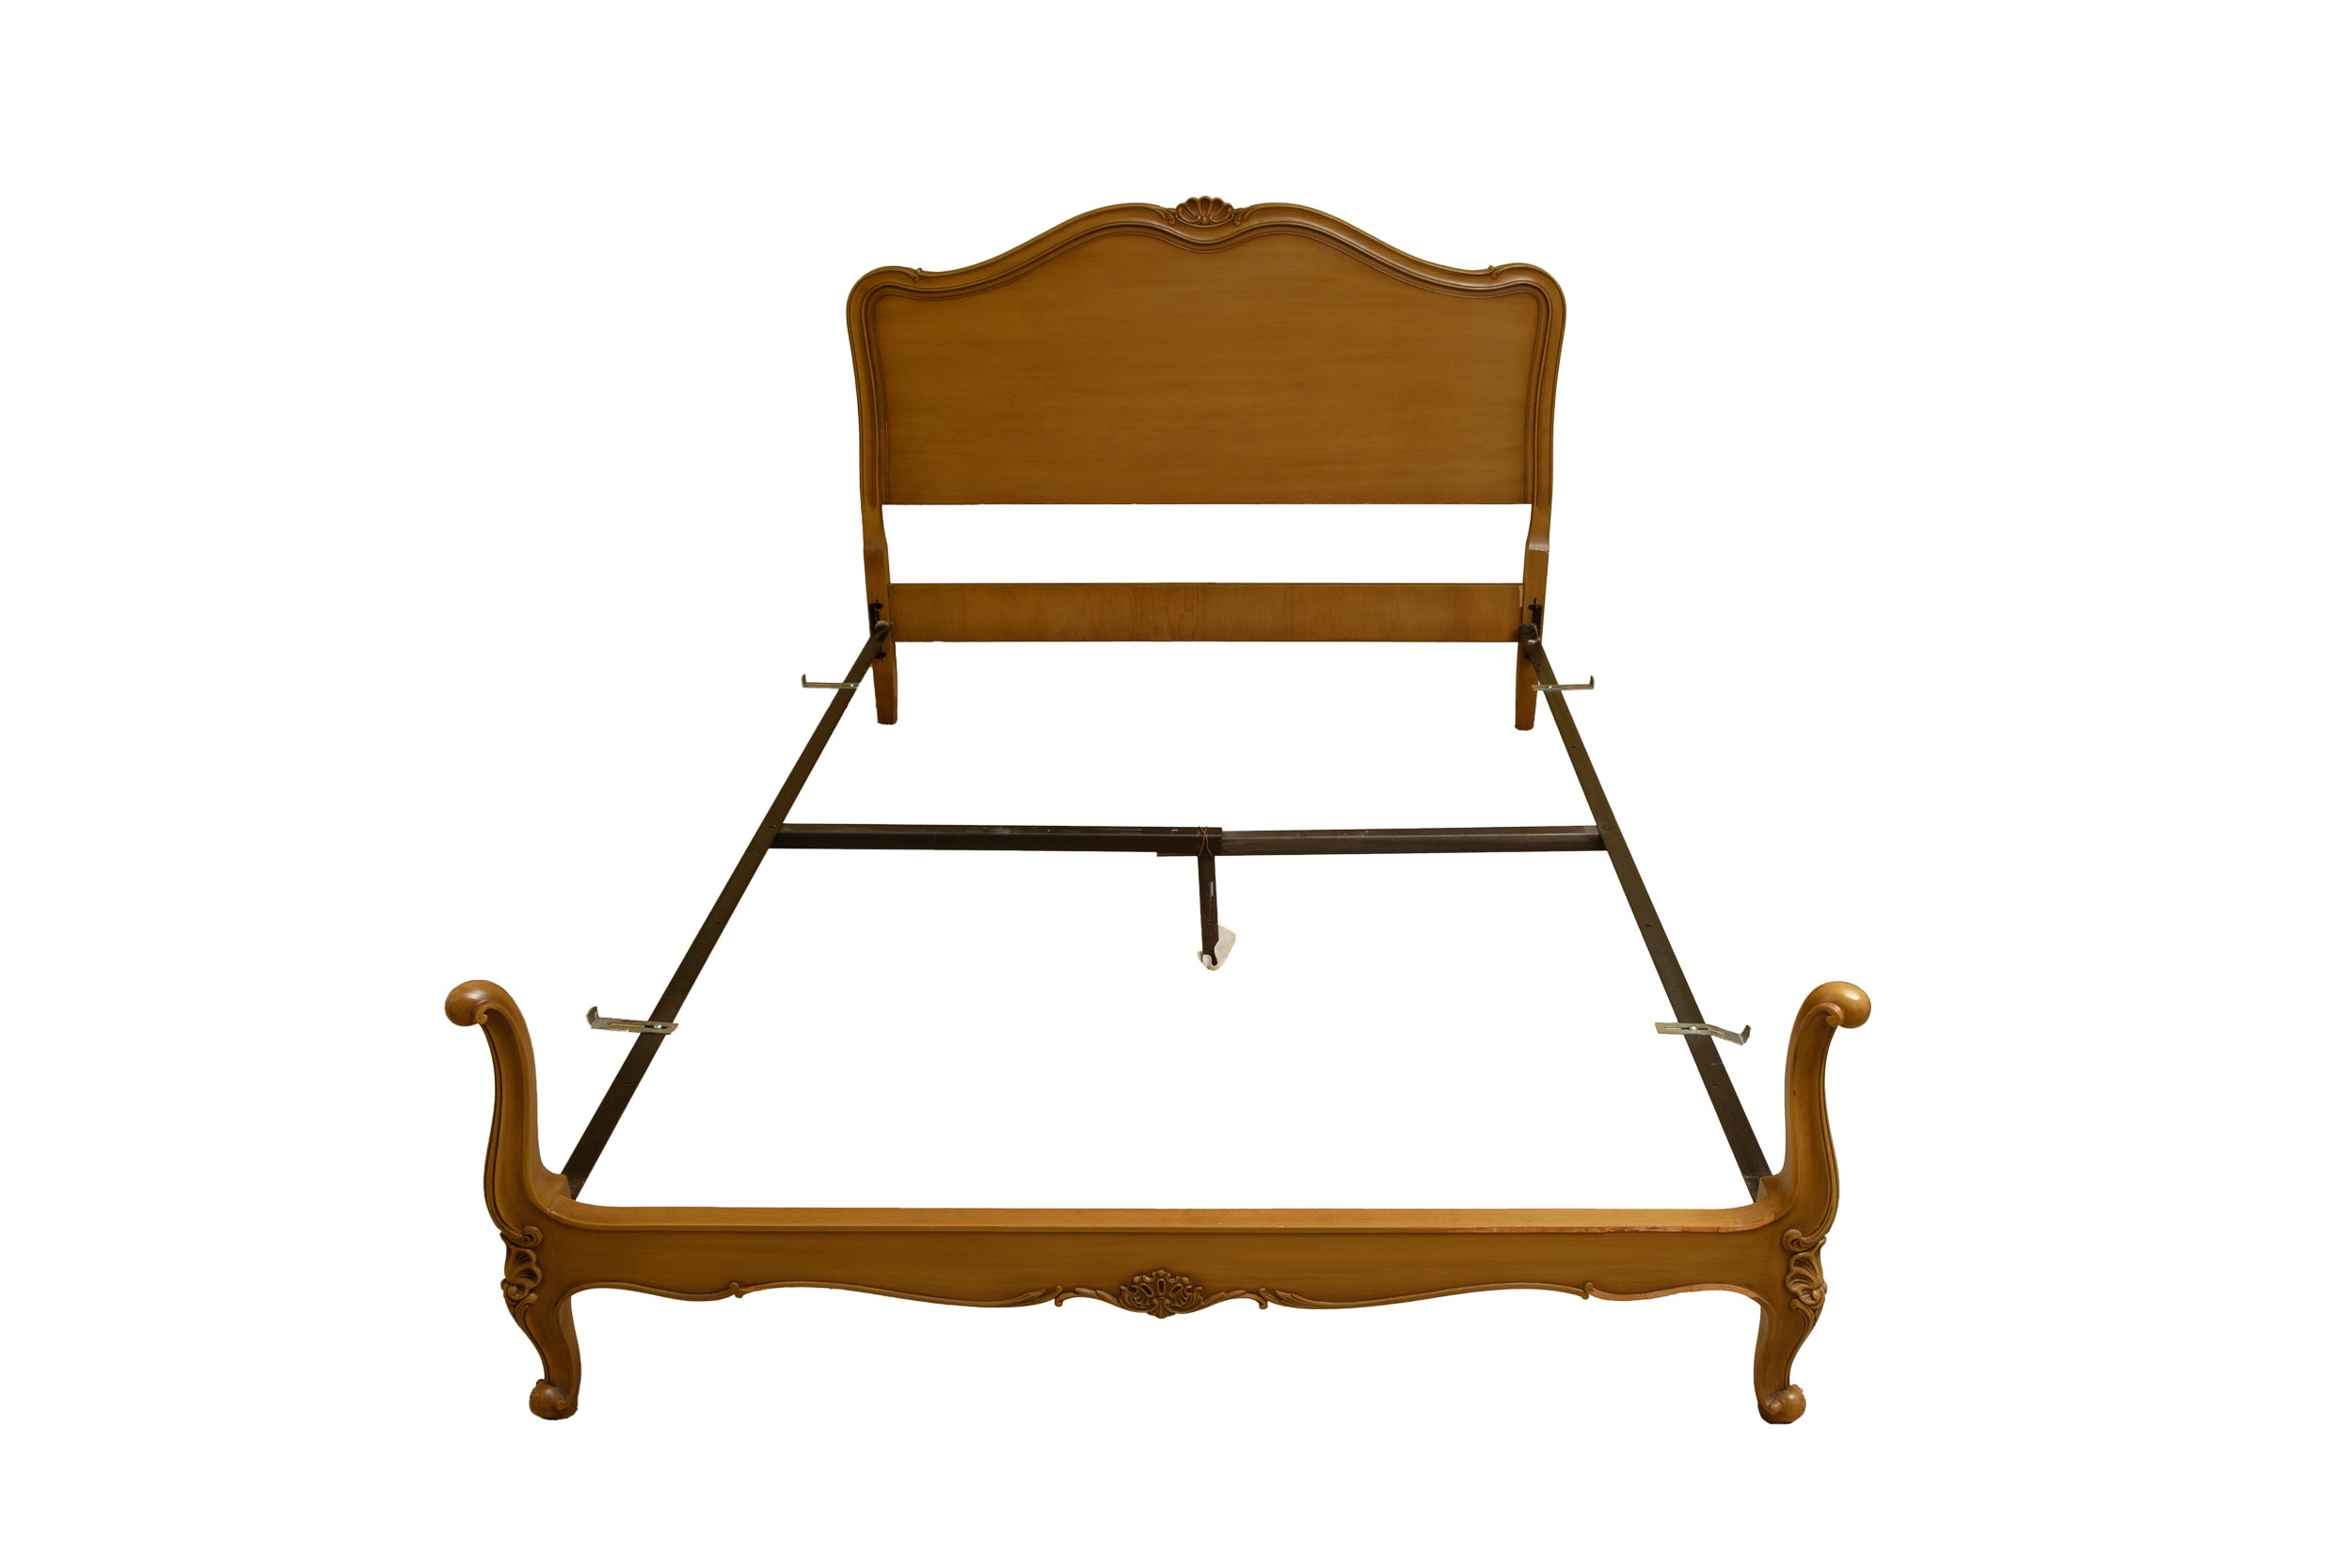 French Provincial Style Full Size Bed Frame by Drexel